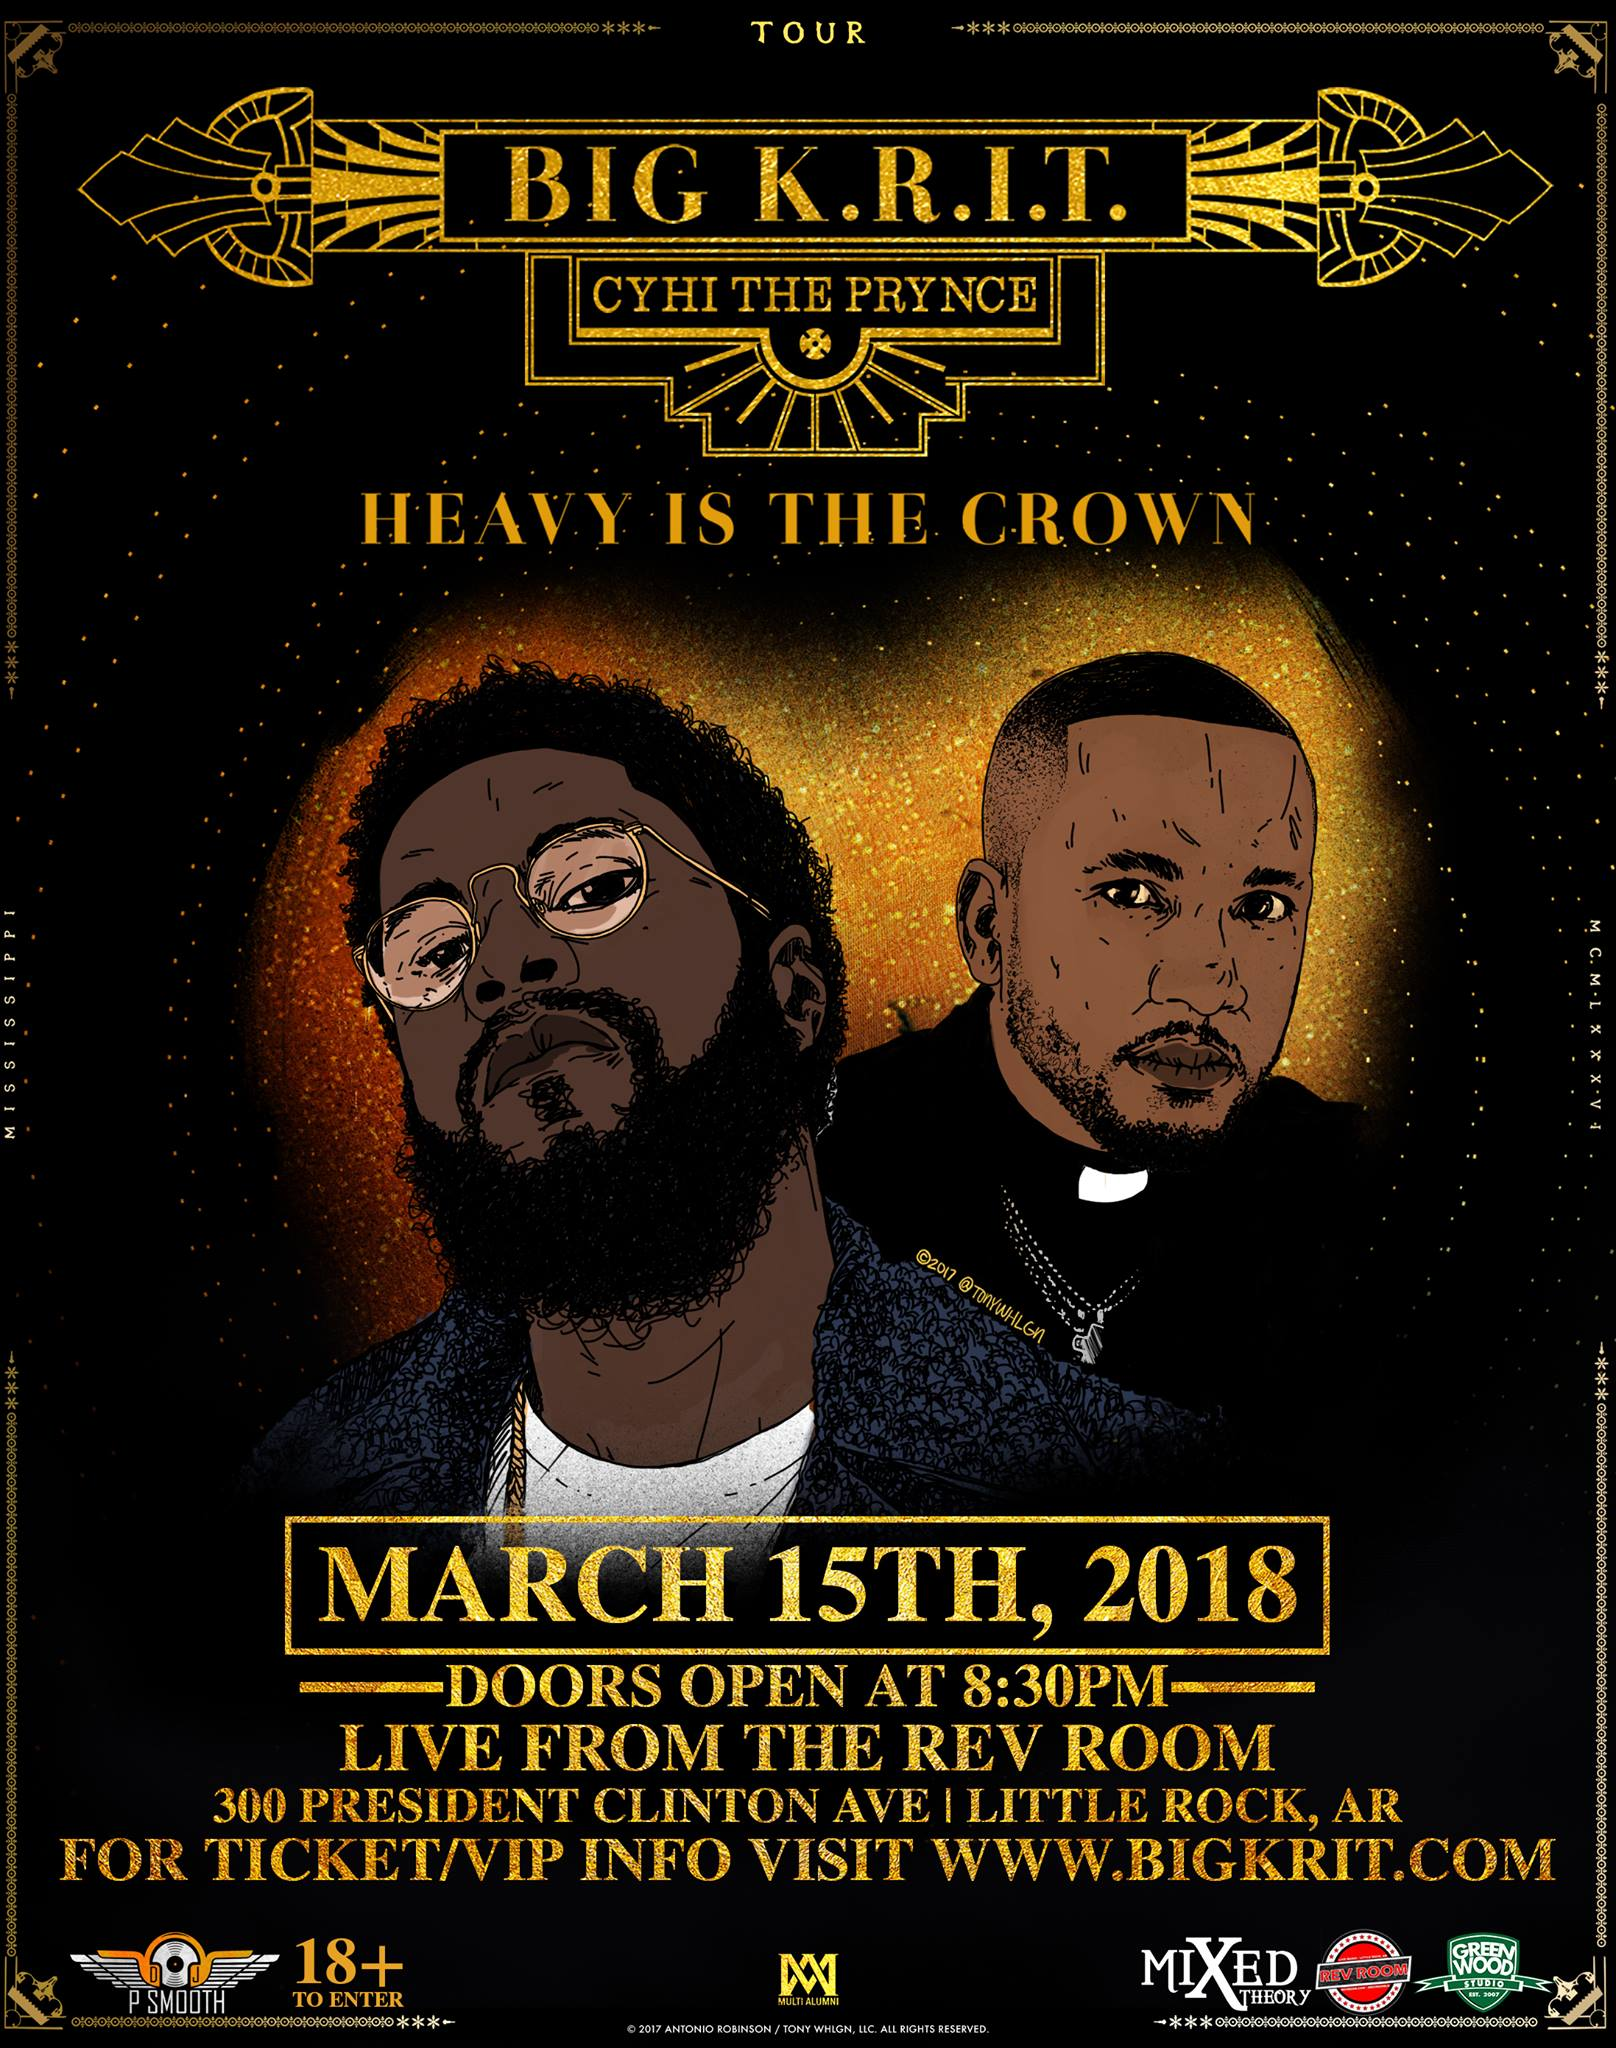 Big K.R.I.T. 'Heavy is the Crown Tour' with Special Guest, Cyhi the Prynce